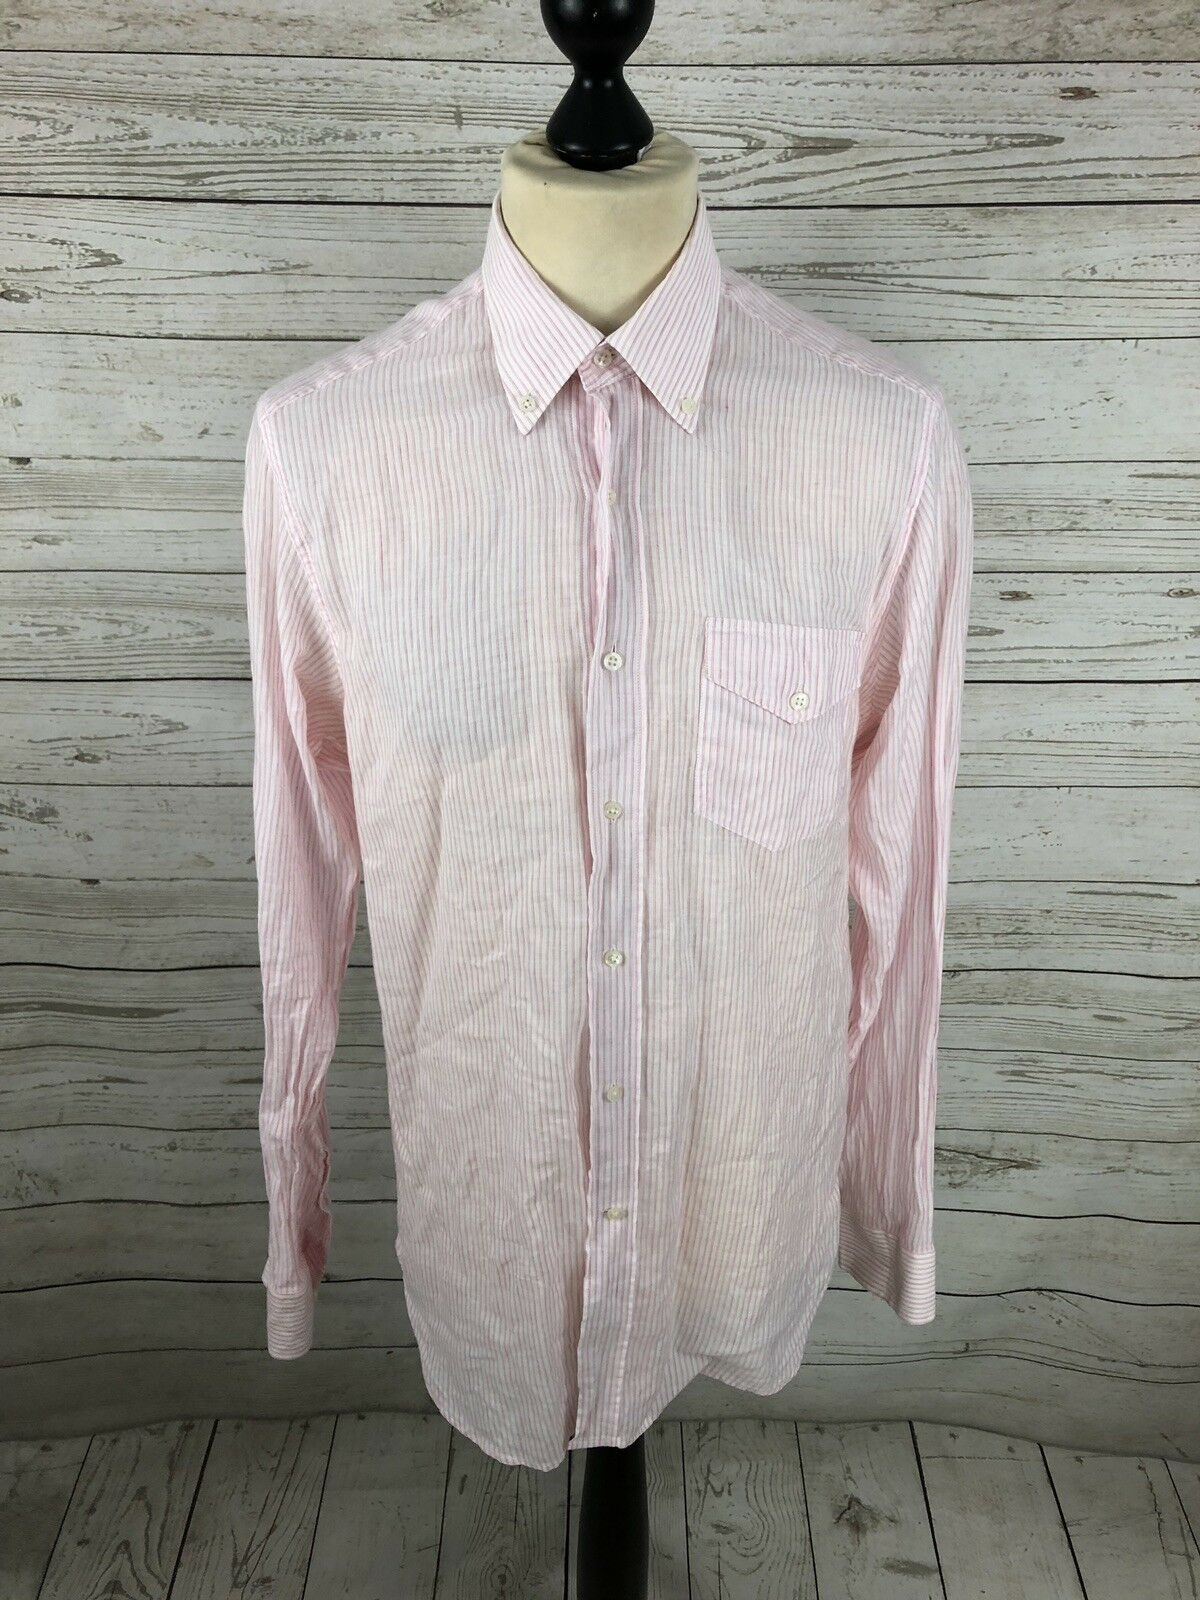 REISS Shirt - Size Medium - Striped - Linen Blend - Great Condition - Men's